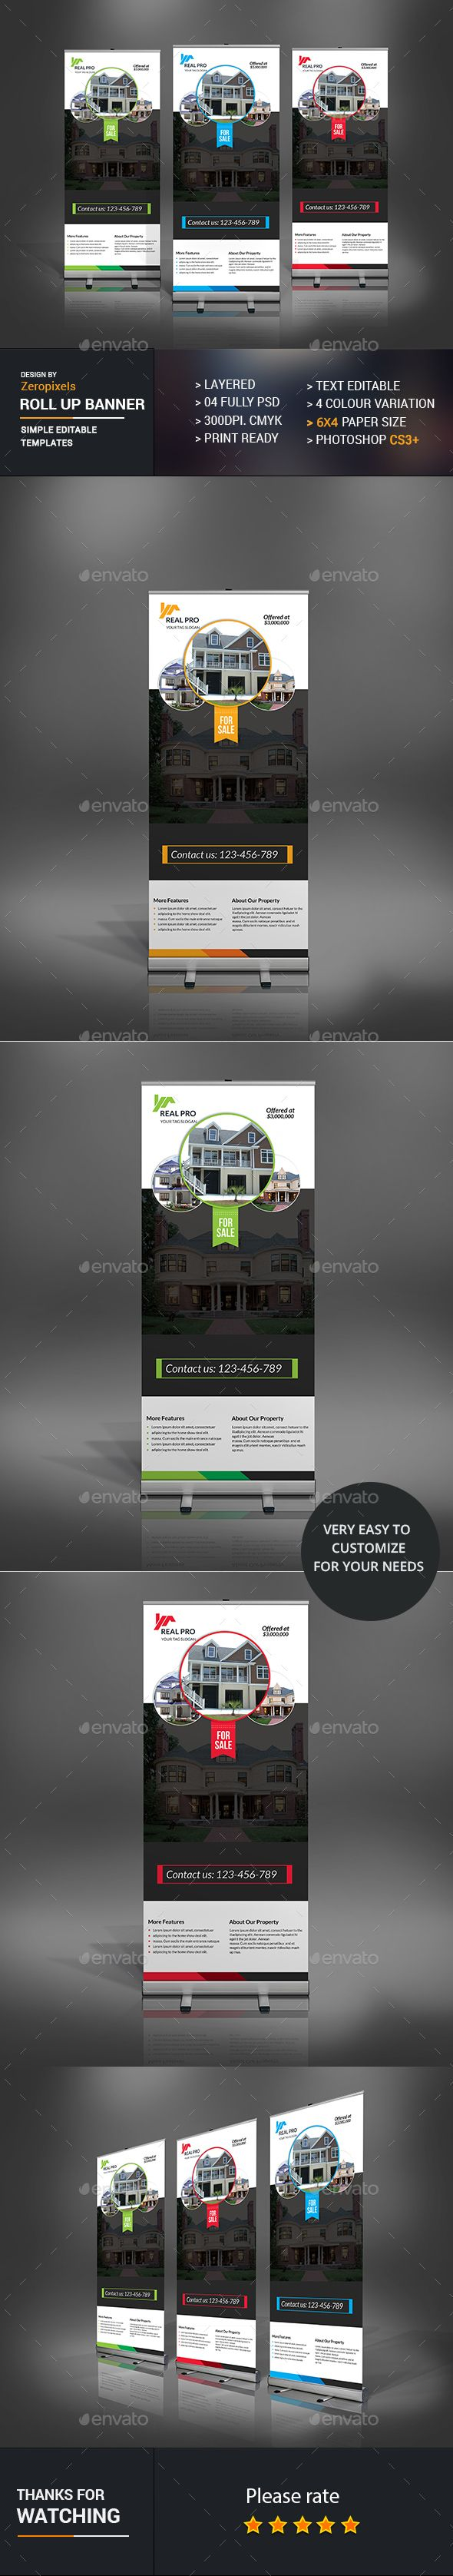 Real Estate Roll Up Banner Design Template - Signage Print Template PSD. Download here: http://graphicriver.net/item/real-estate-roll-up-banner-/16888508?s_rank=64&ref=yinkira